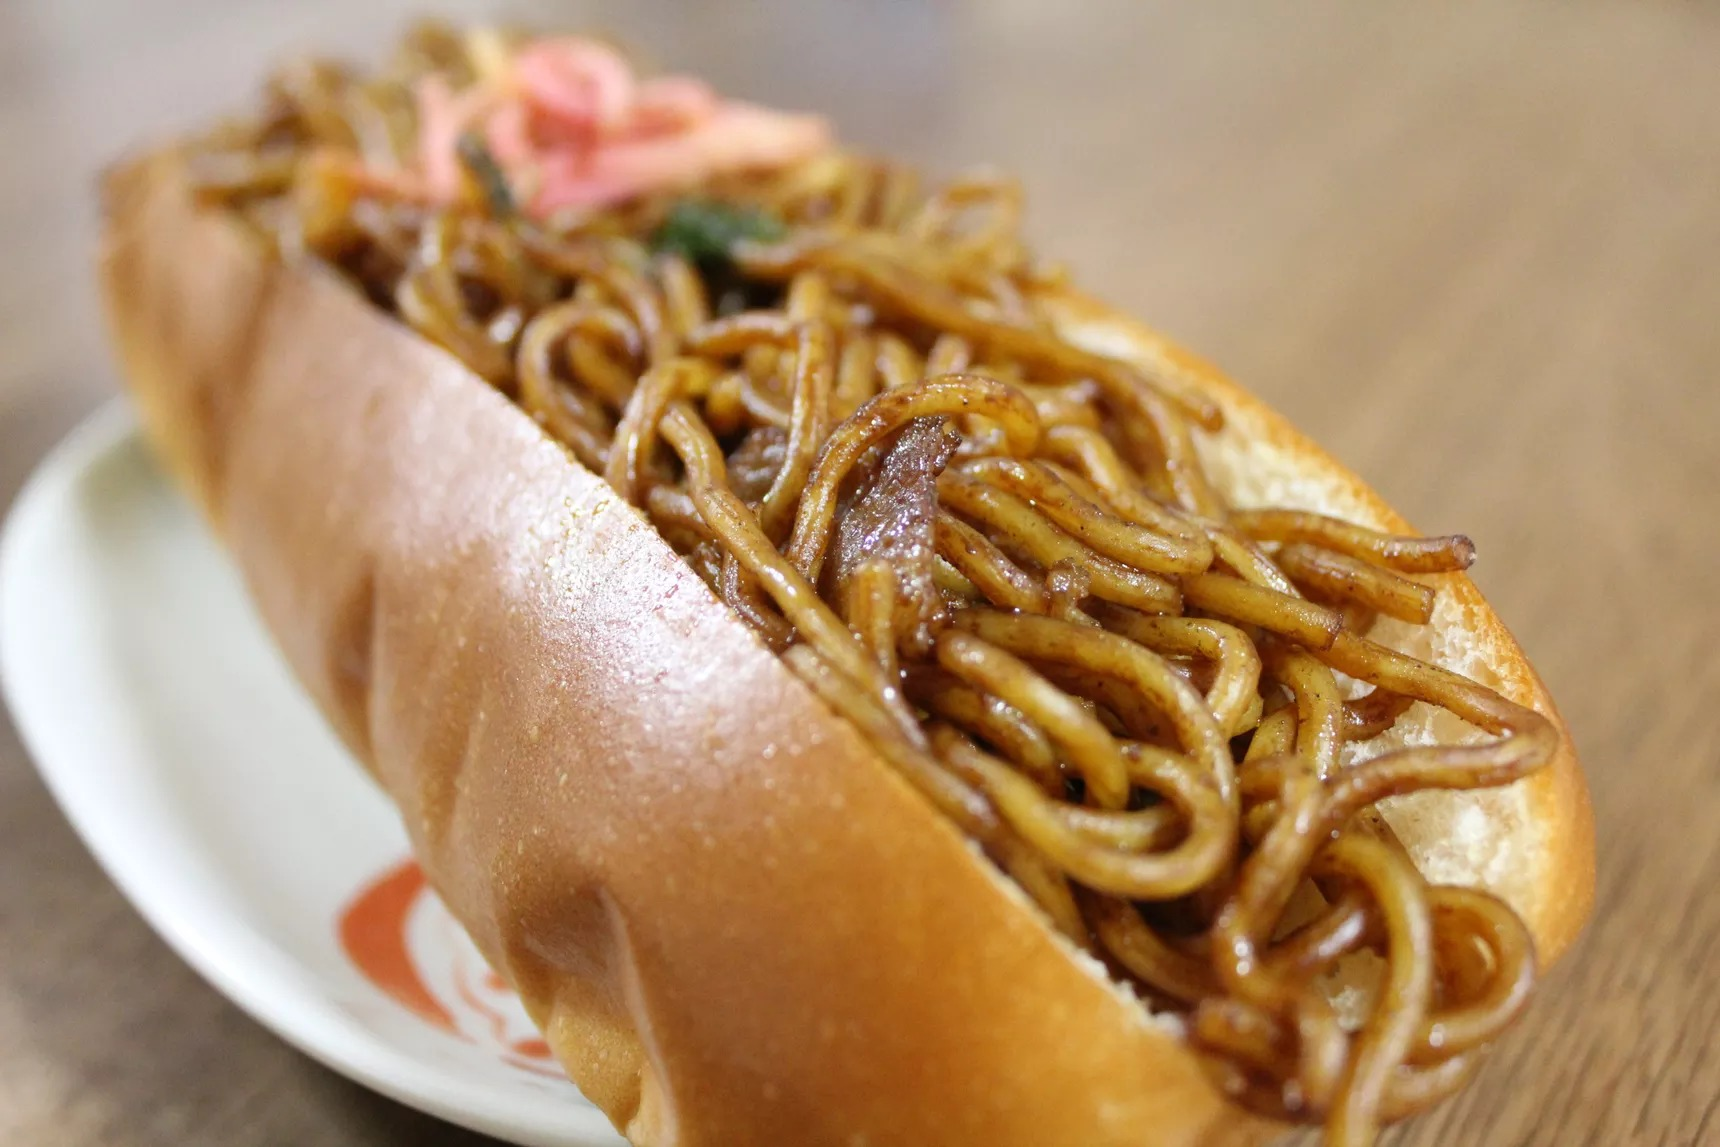 New Lakeview Japanese Restaurant Serving Hot Dogs Topped With Street Noodles